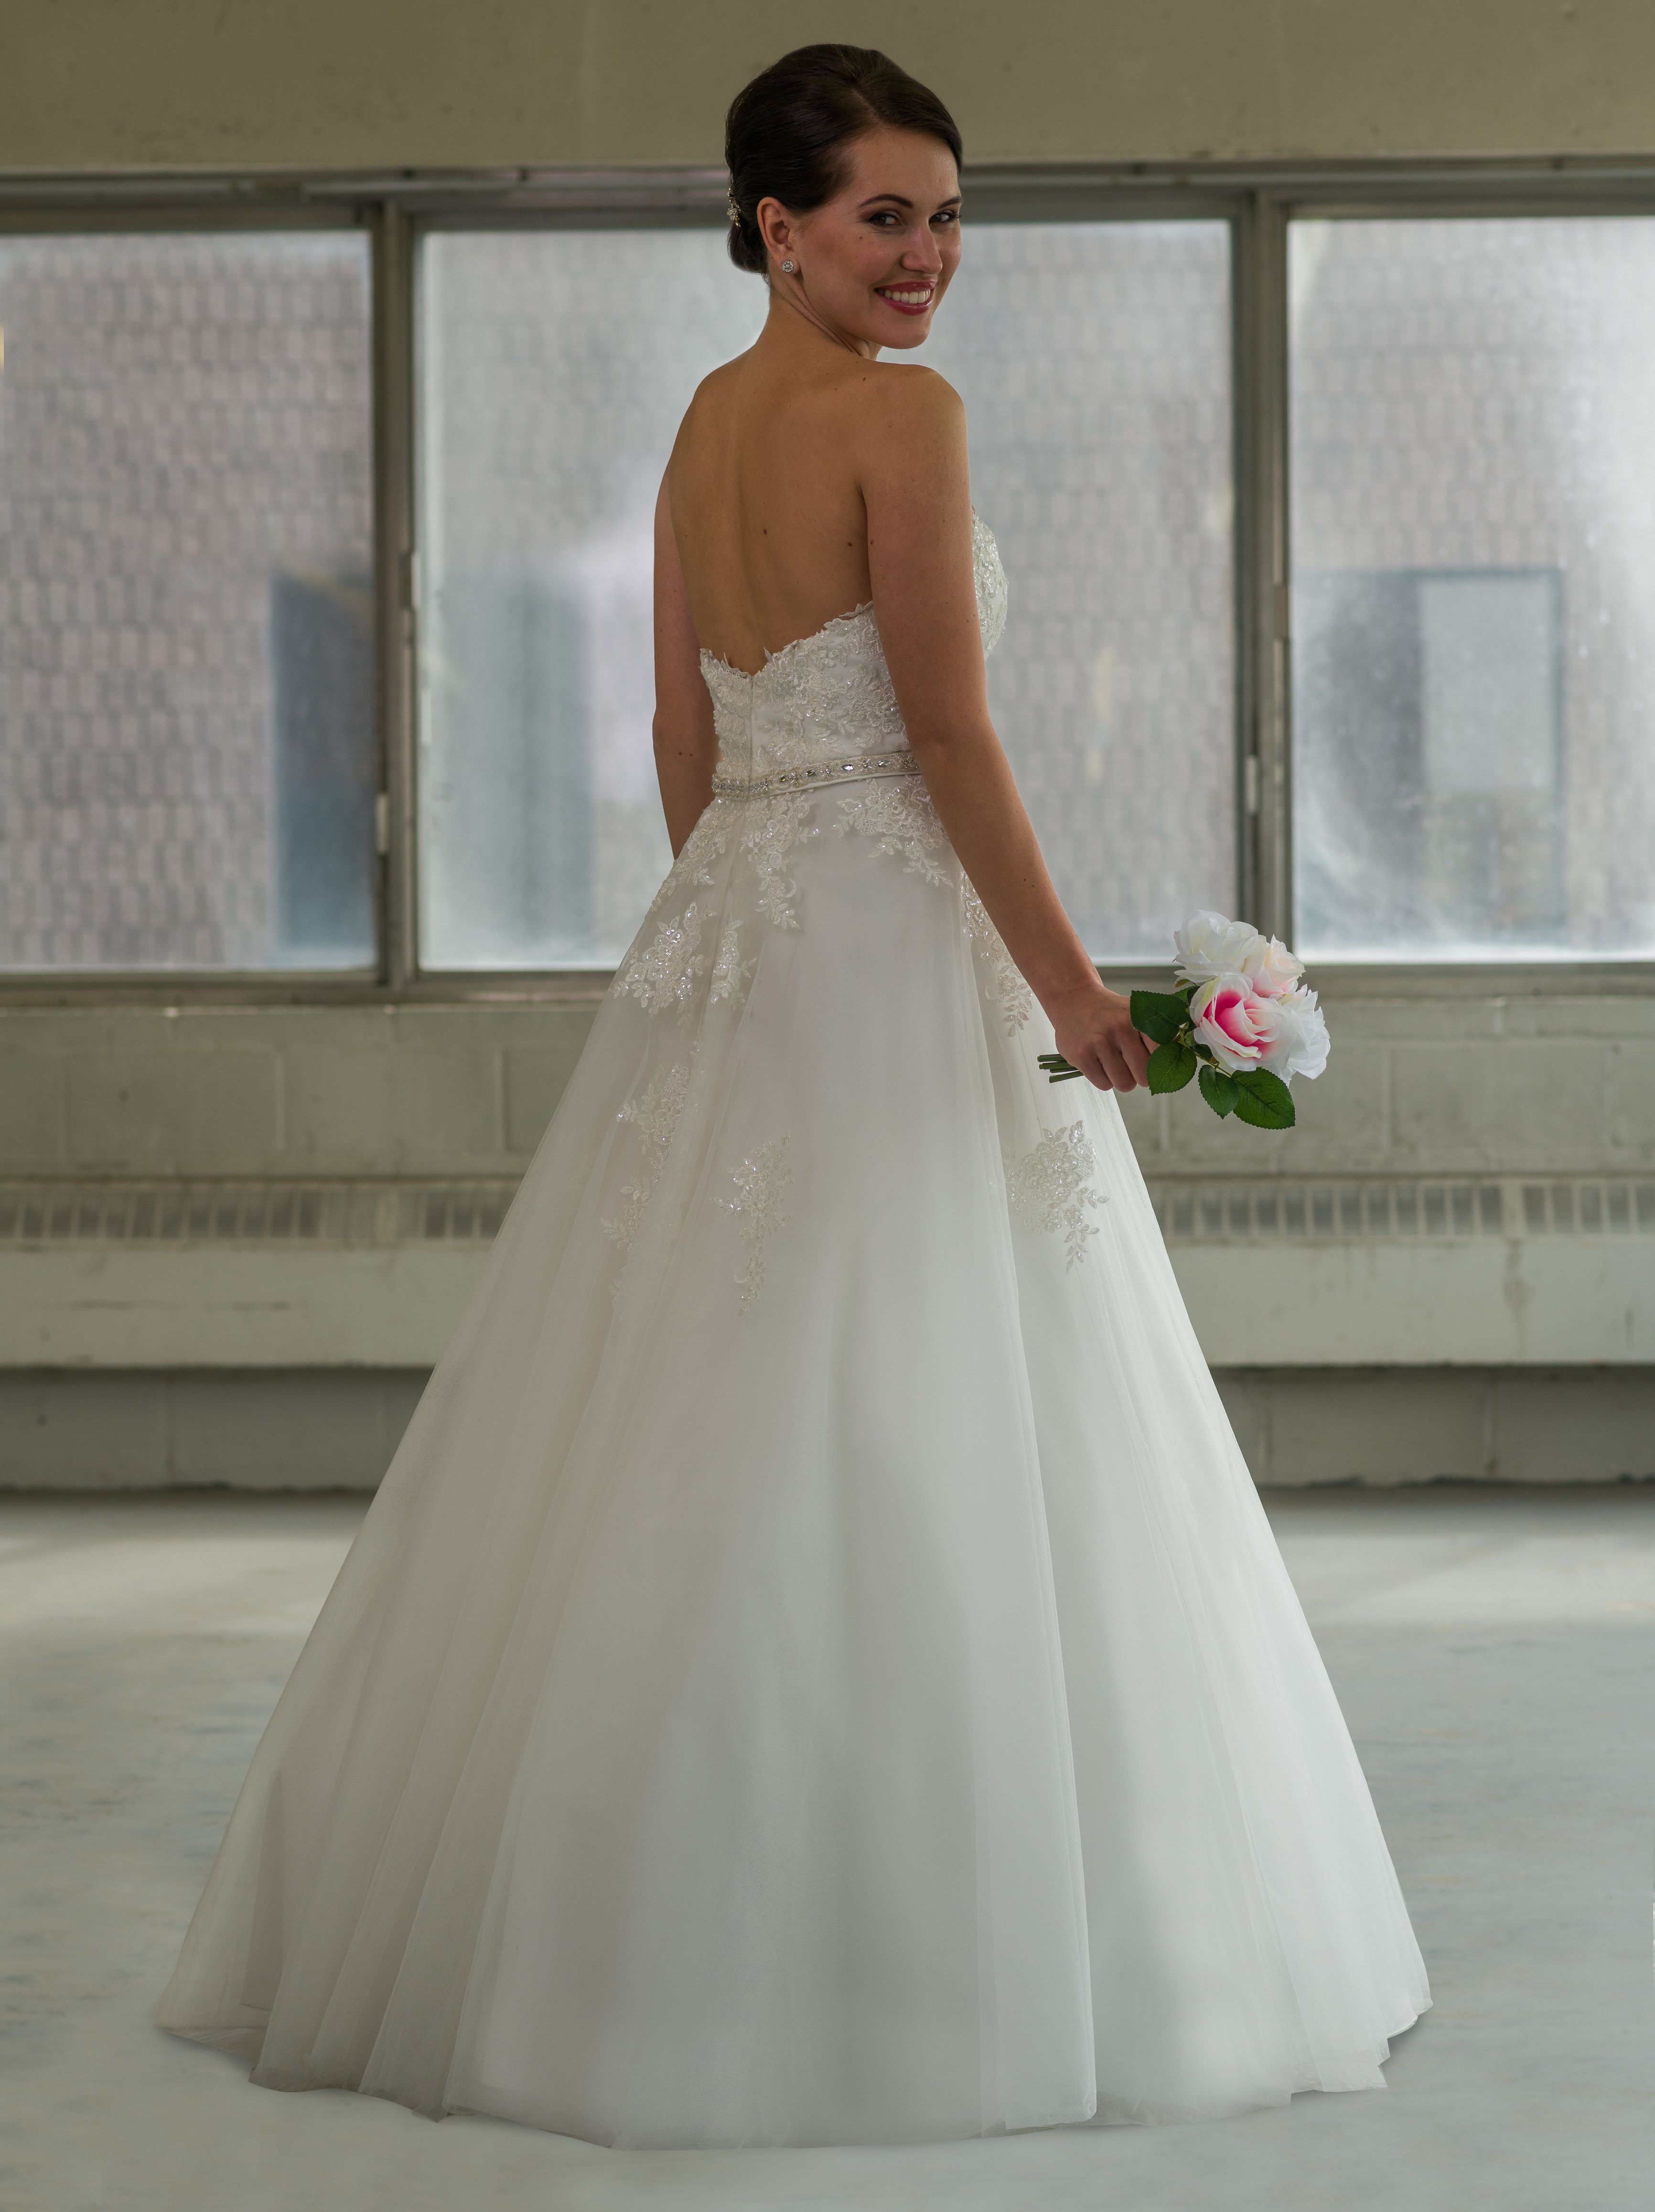 Wedding dress for short girl  Princess inspired gown Bridalane style  features a beaded lace